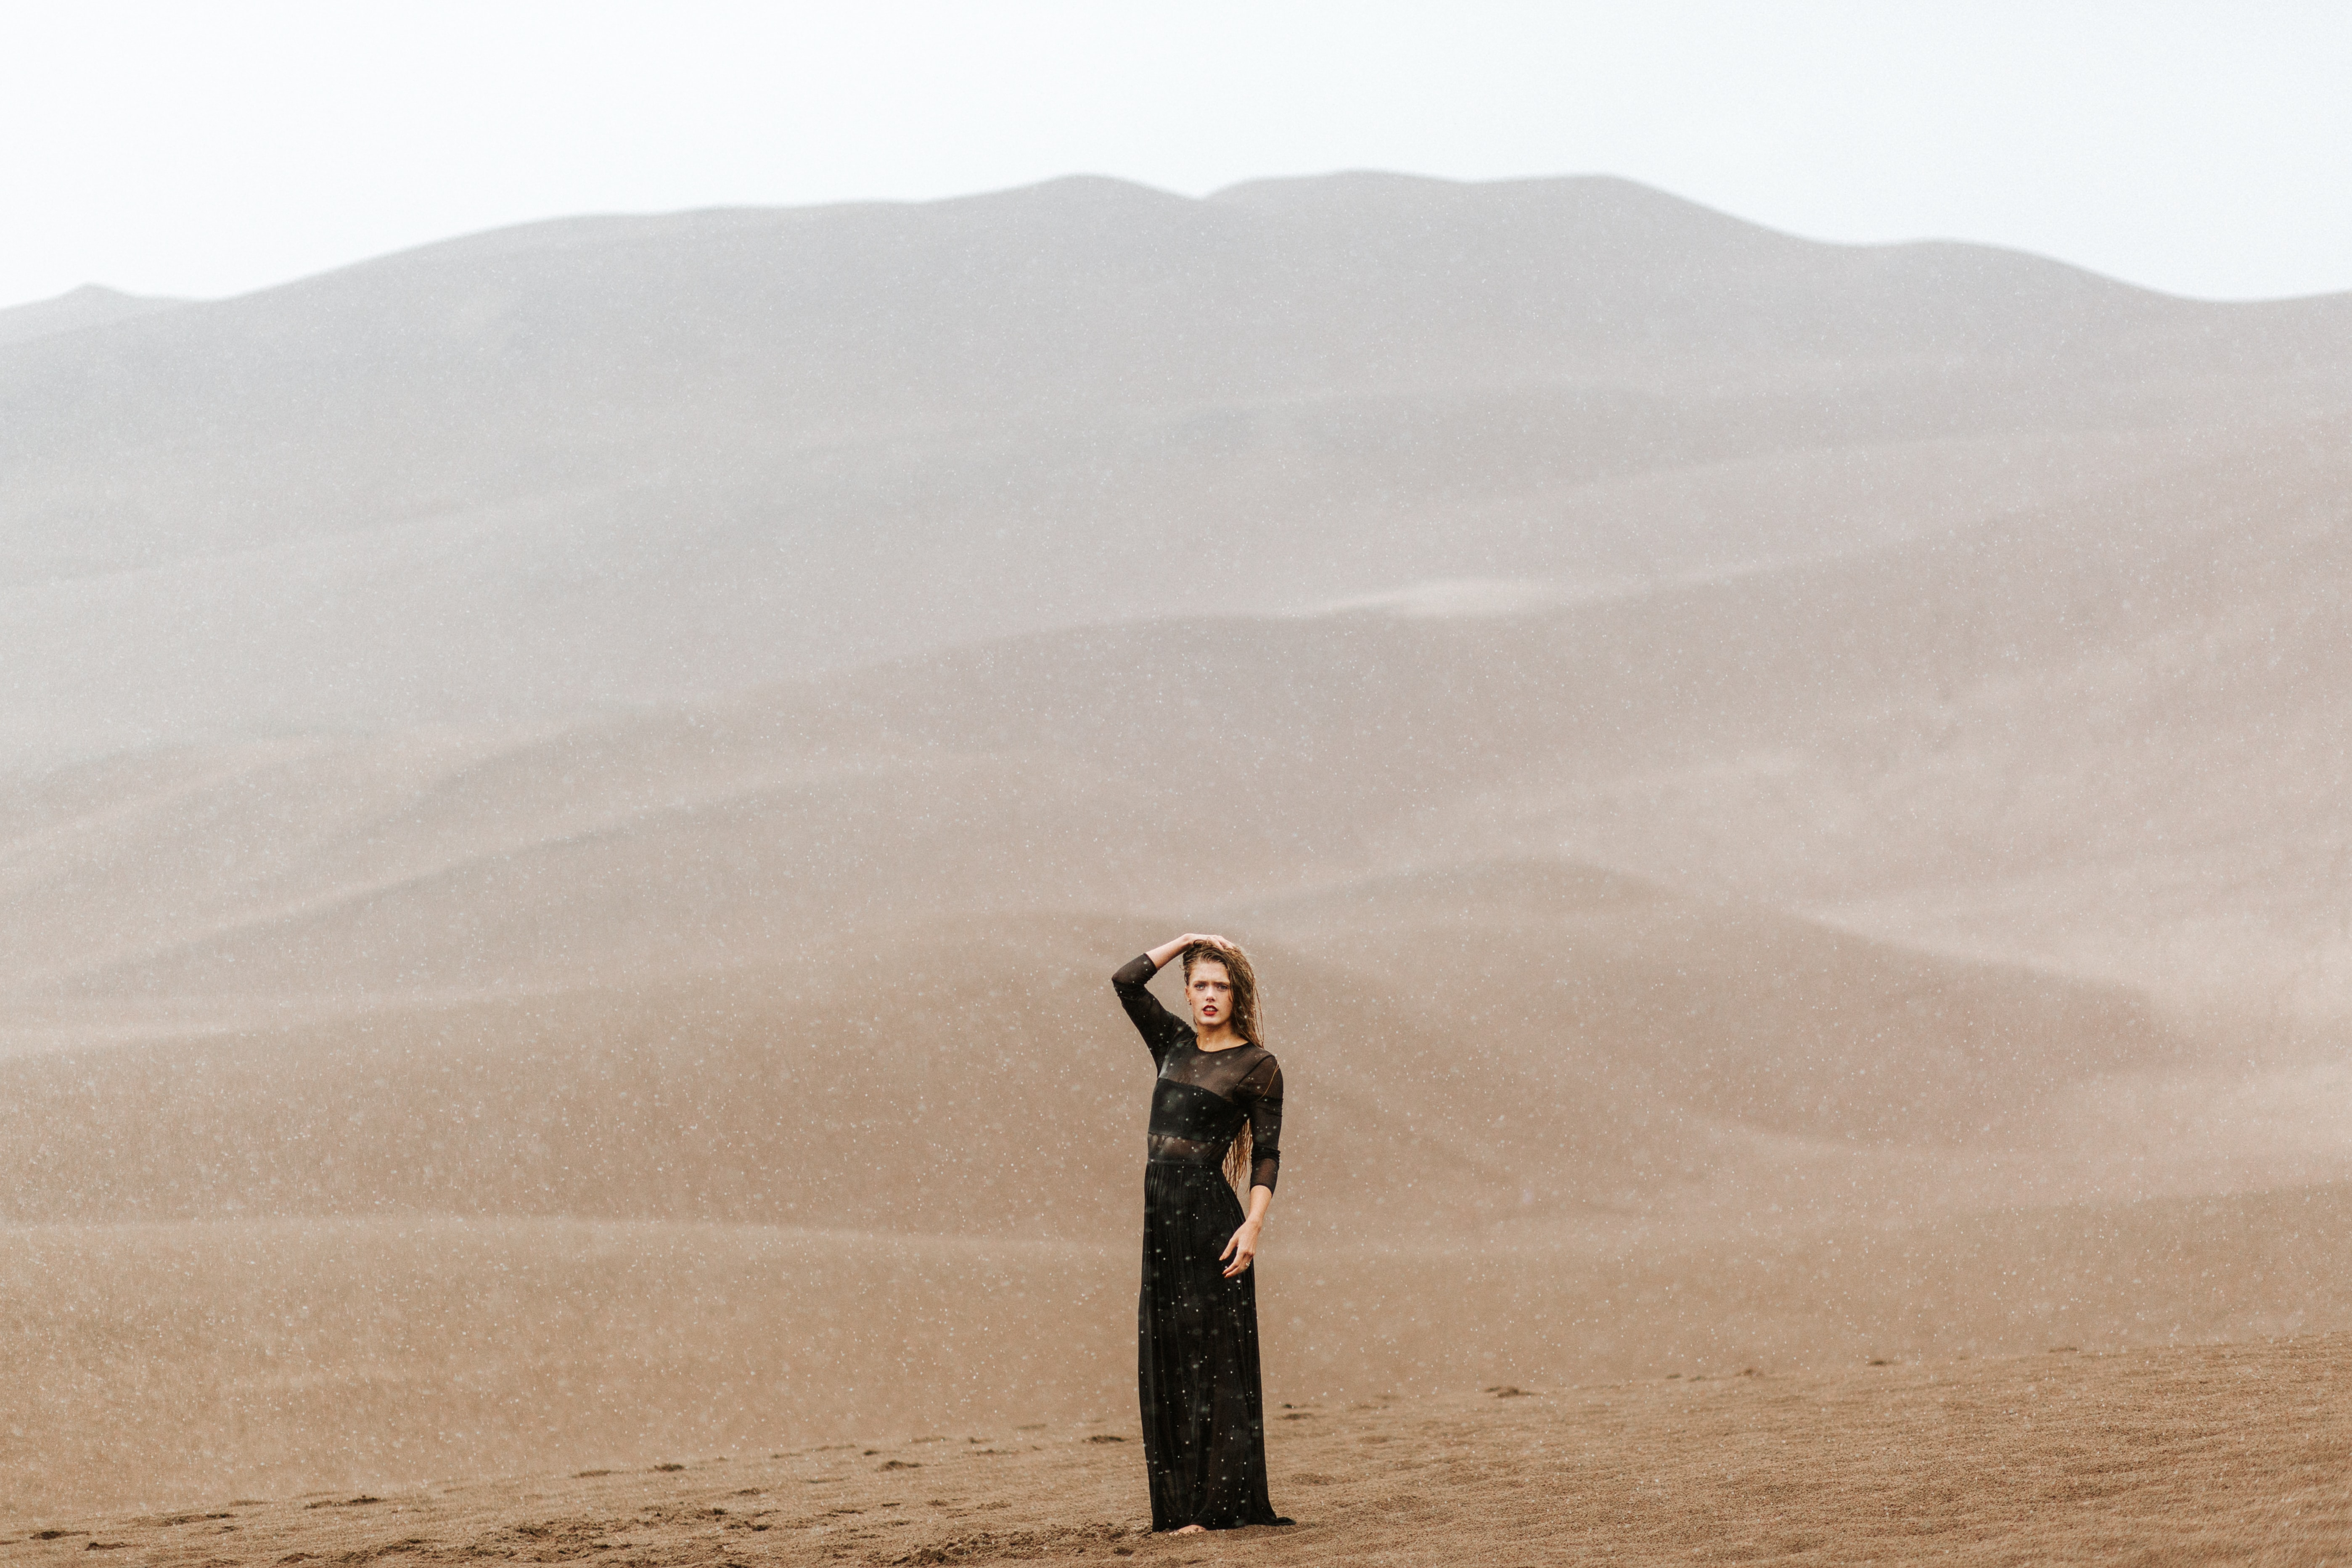 Fashionable woman models in desolate sandy desert